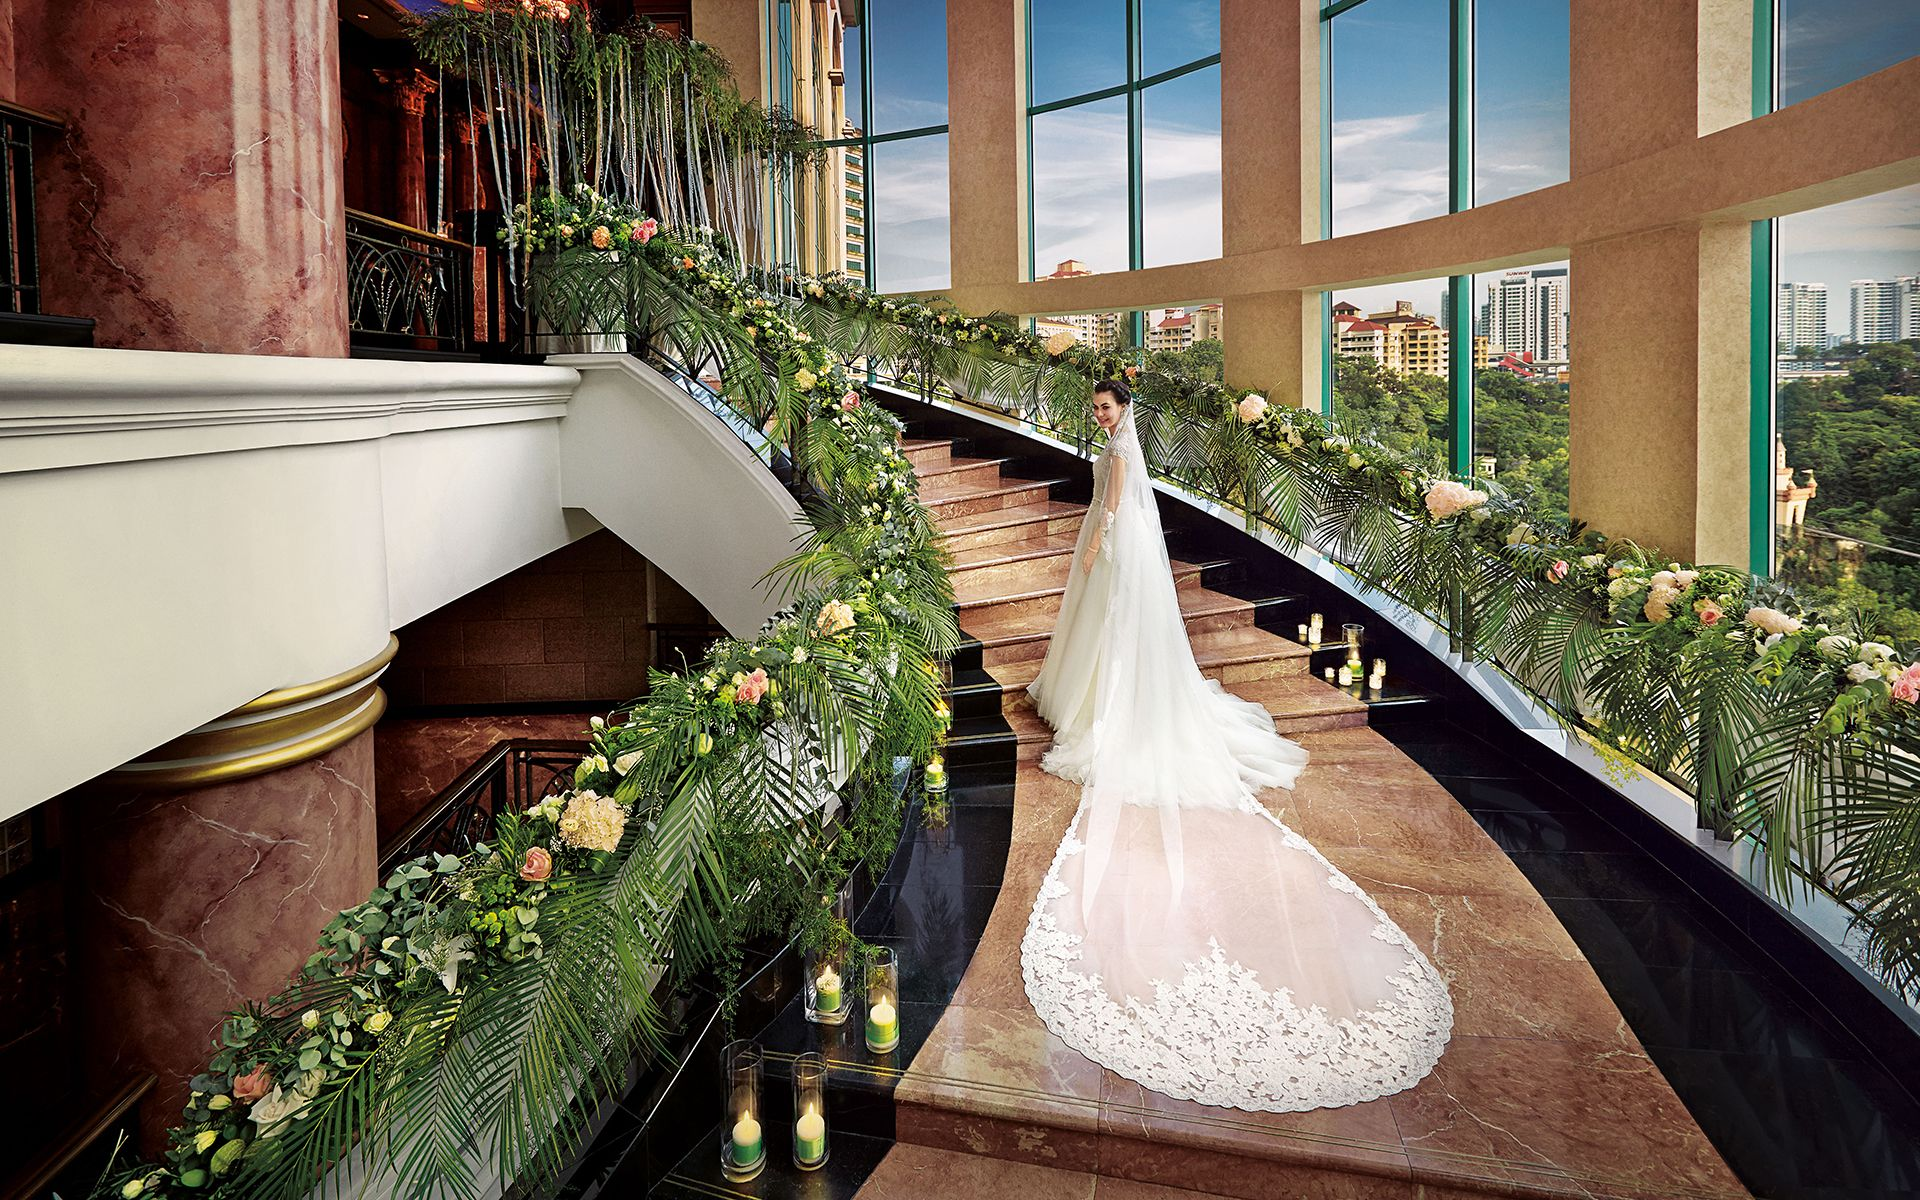 Stairway to wedded bliss, surrounded by panoramic views of Sunway City and its lagoon